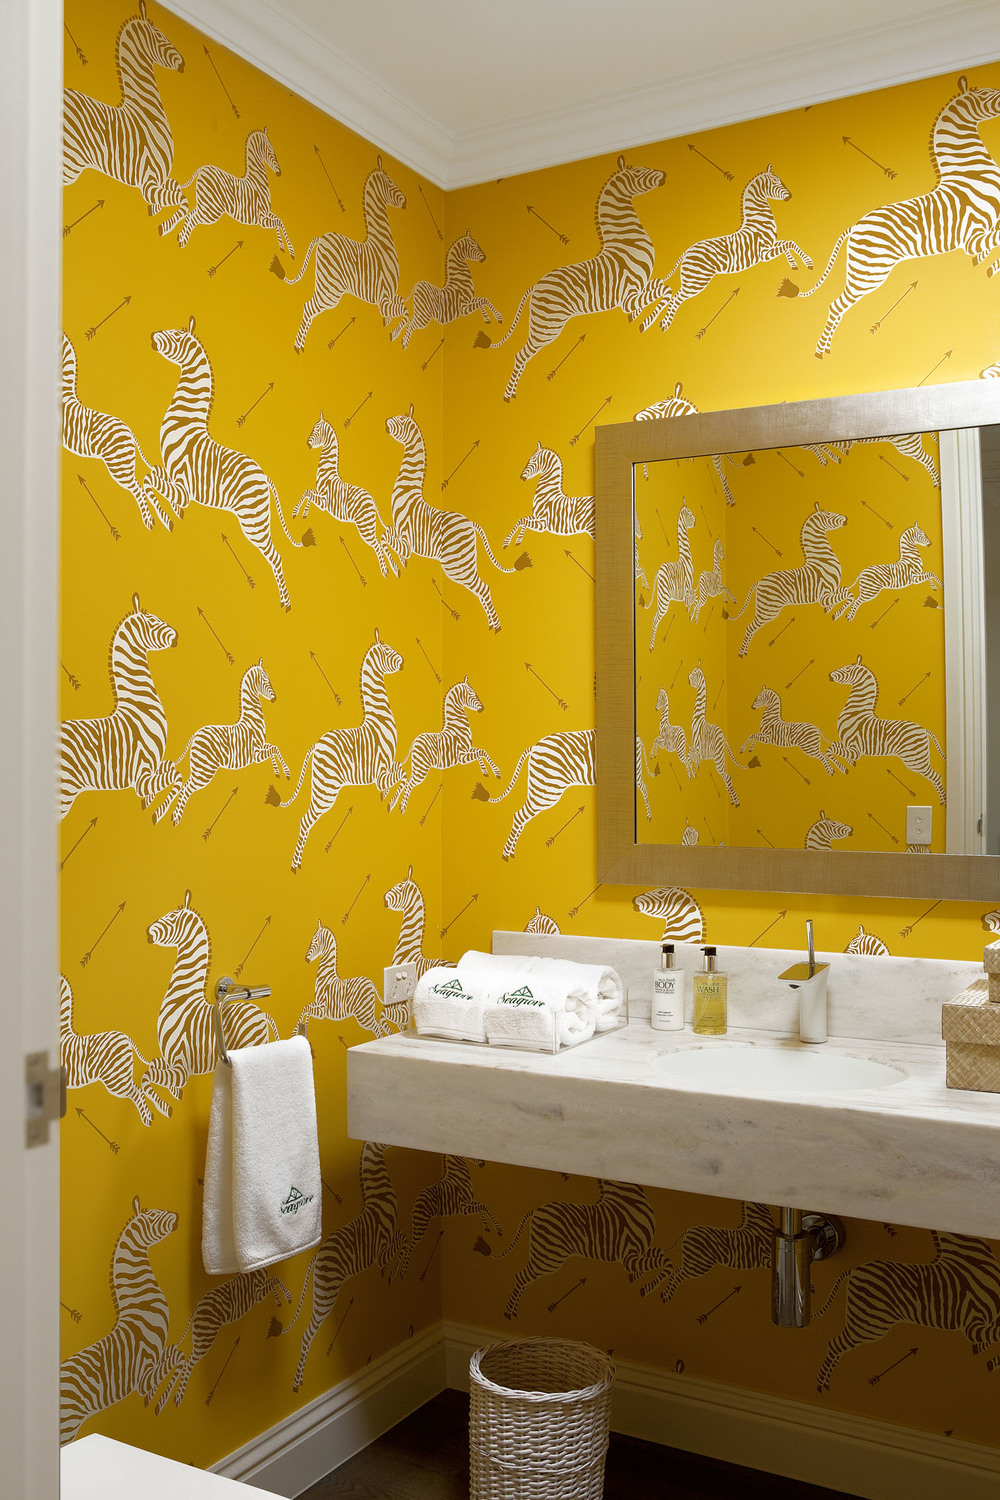 american-style-bathroom-scalamandre-zebra-wallpaper-yellow-diane-bergeron.jpg